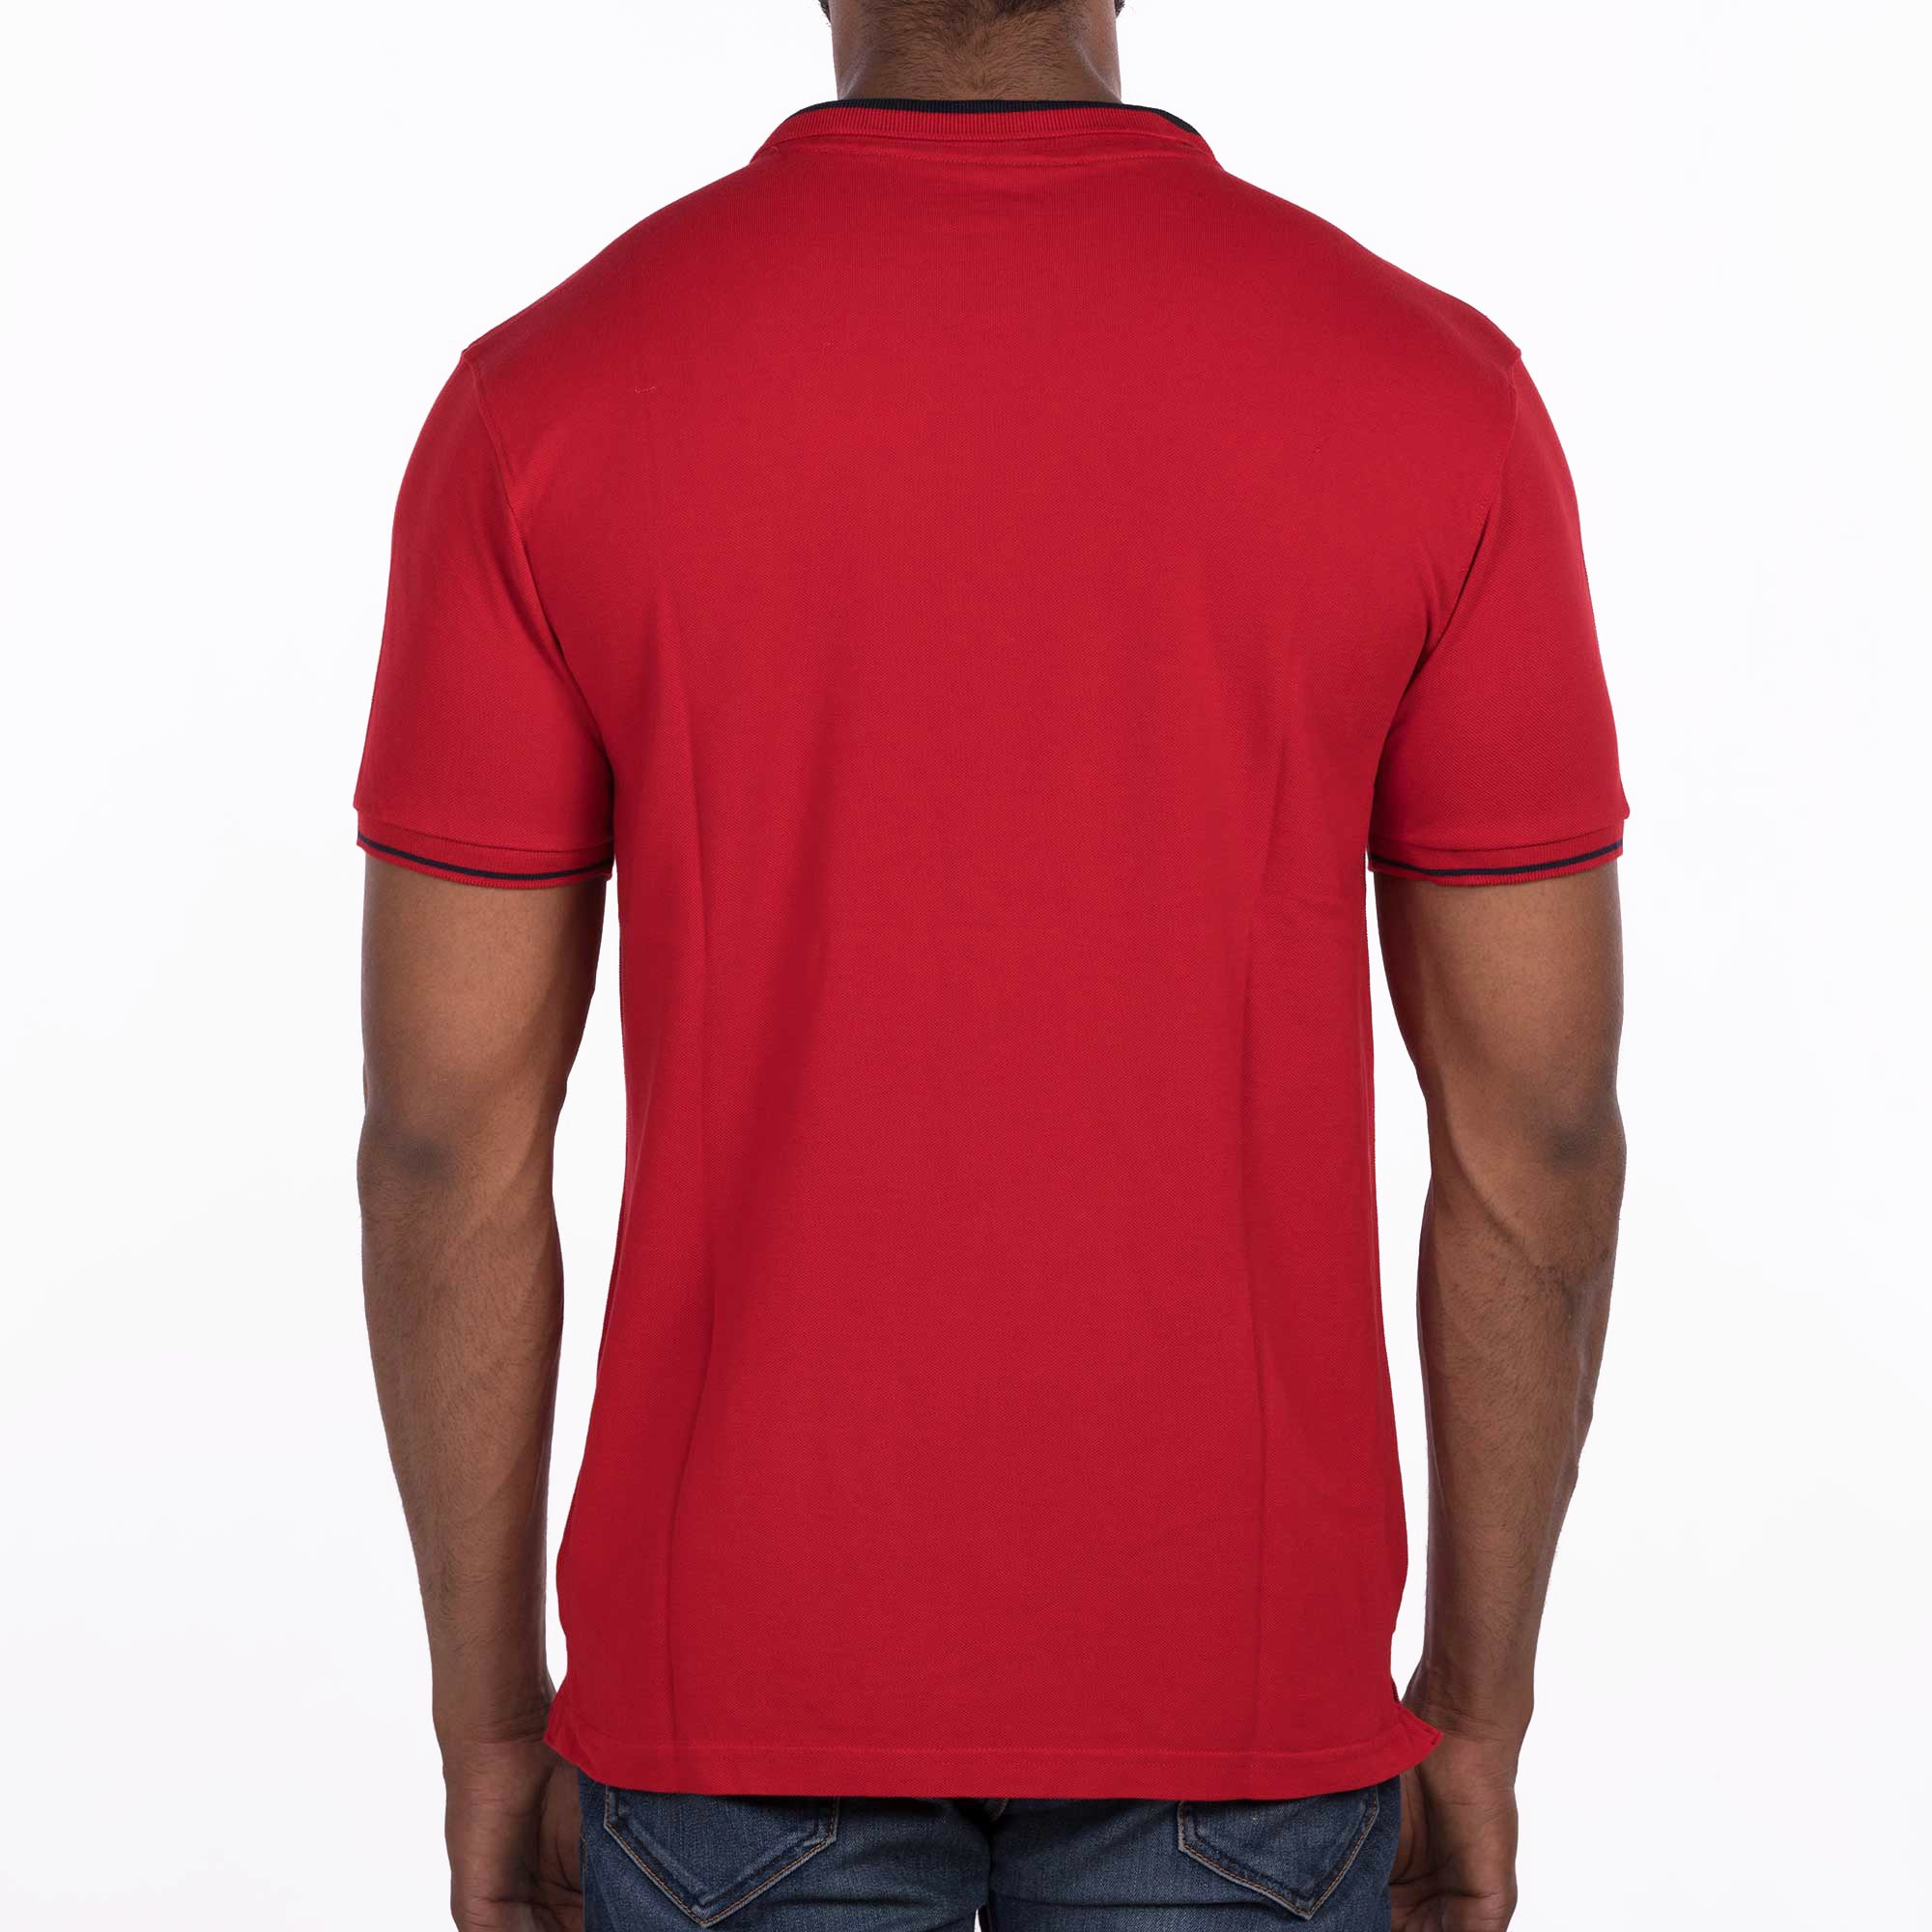 DB070 Polo Tees - Red